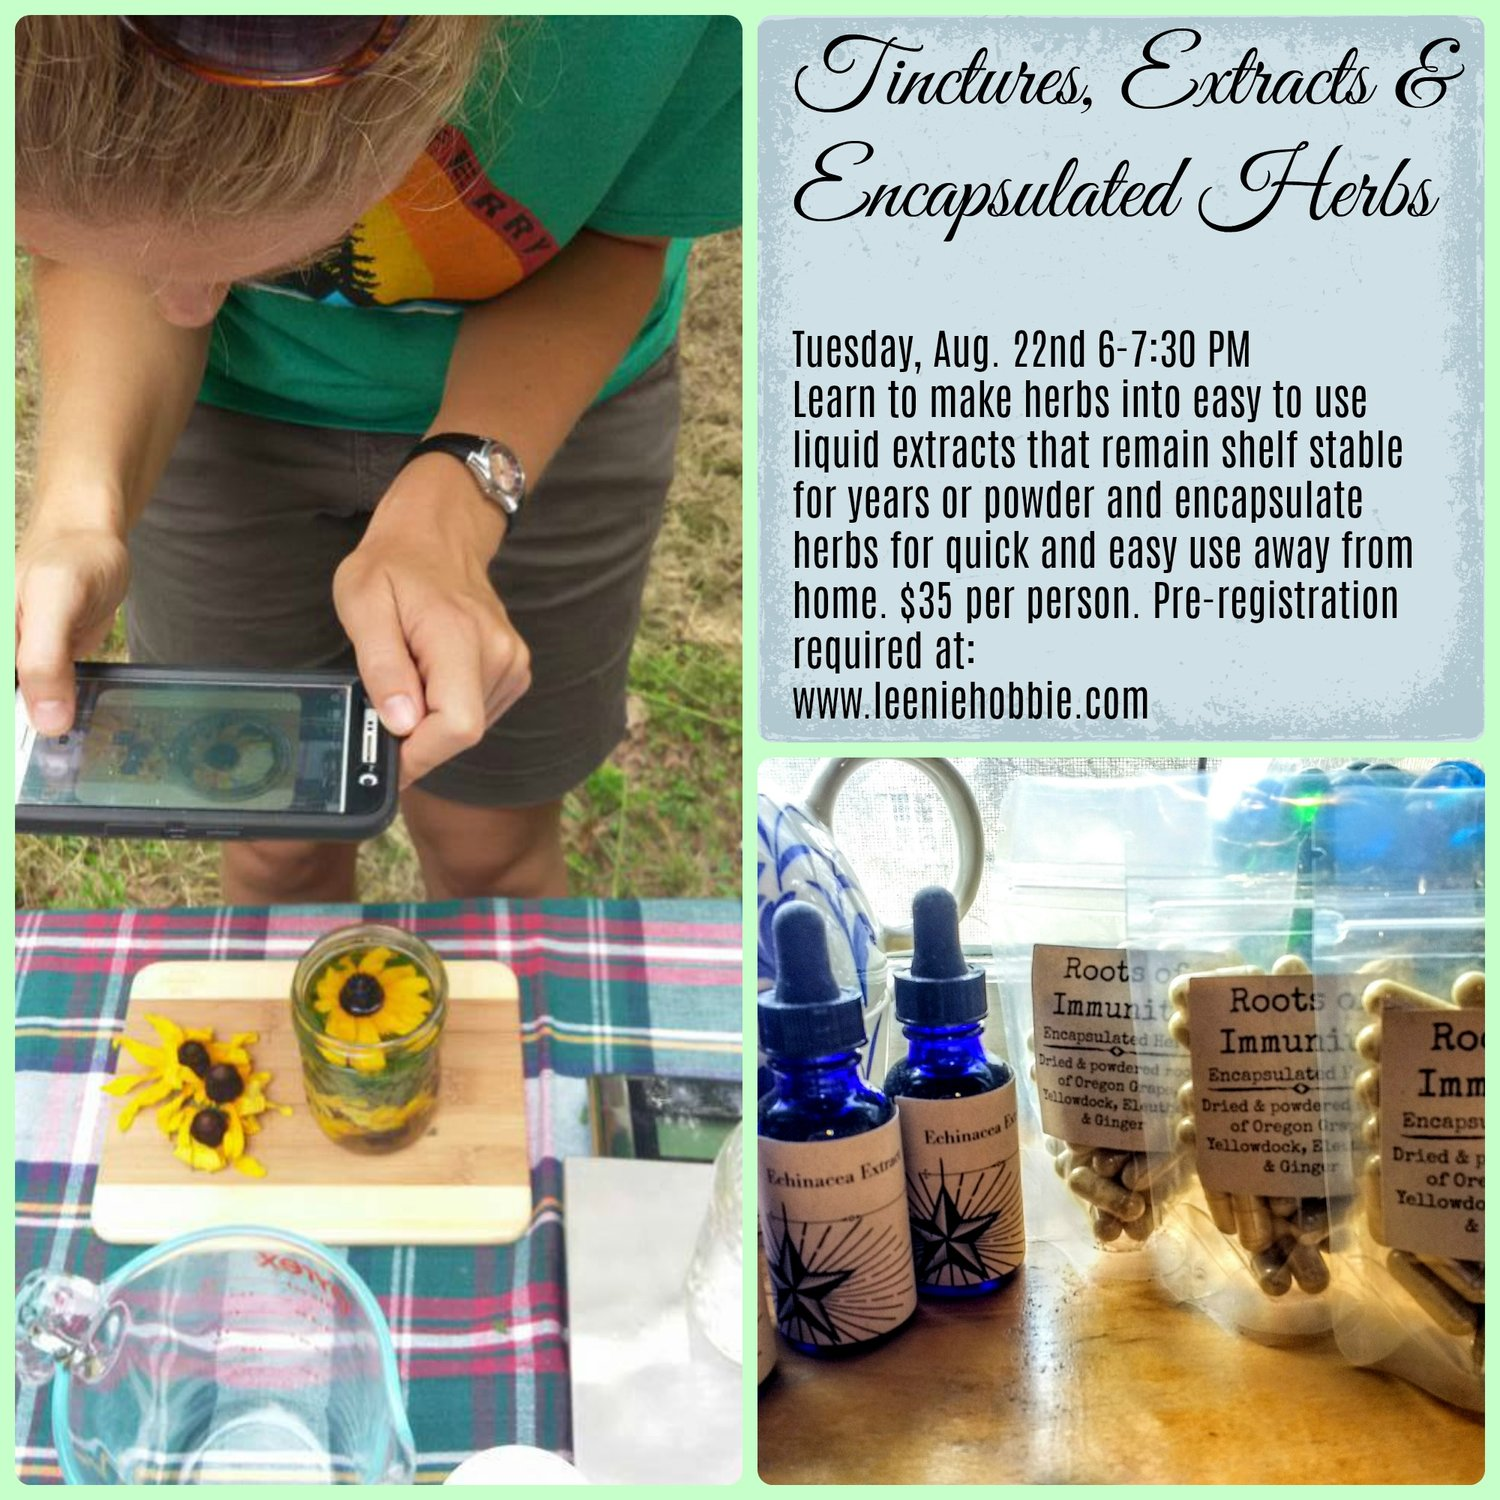 Apothecary Skills Class: Tinctures, Extracts, & Encapsulated